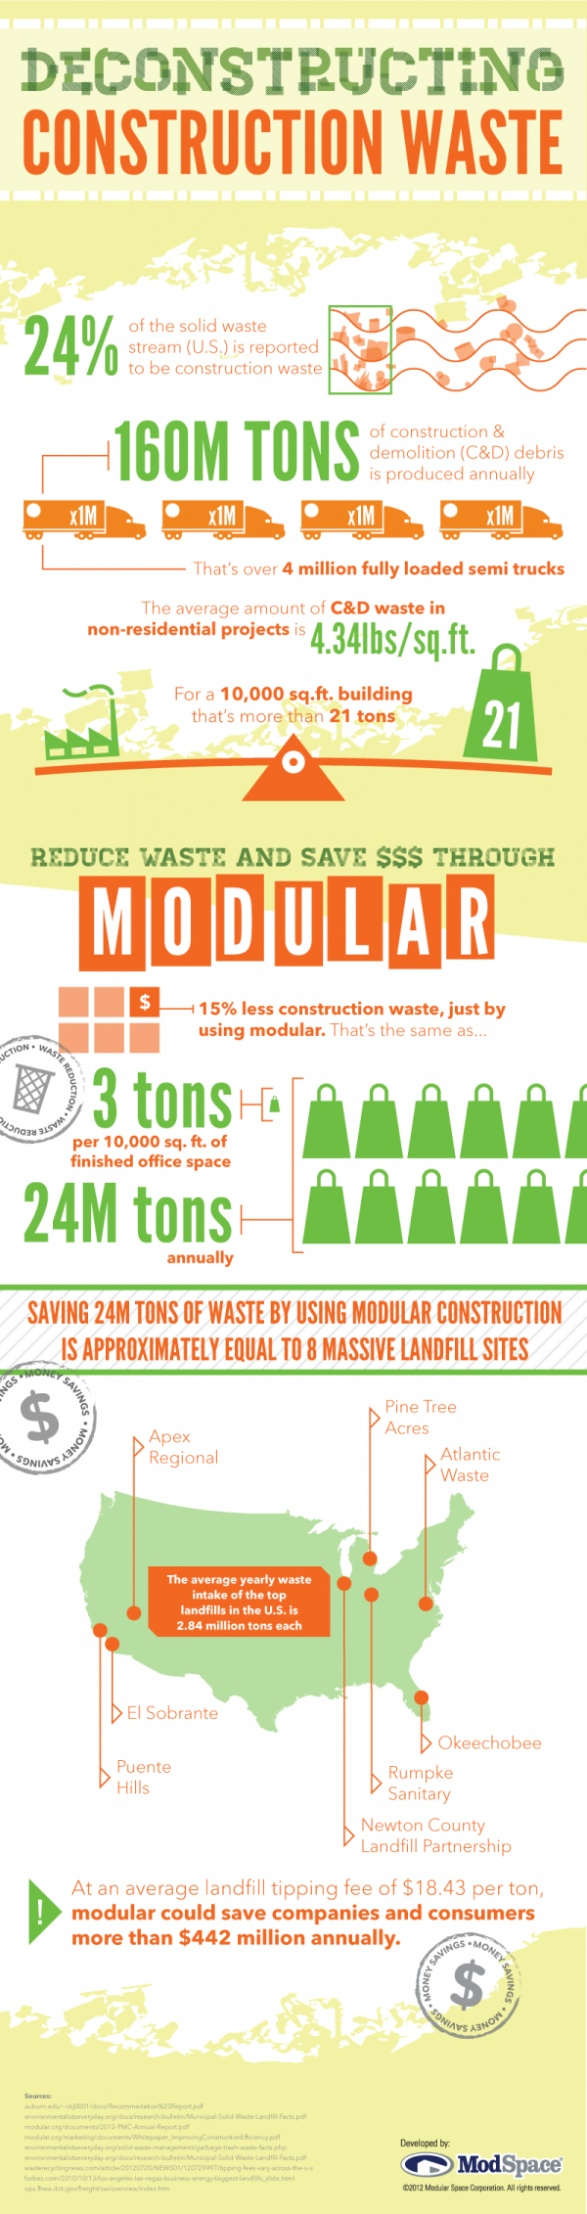 Deconstructing Construction Waste and Saving Big with Modular